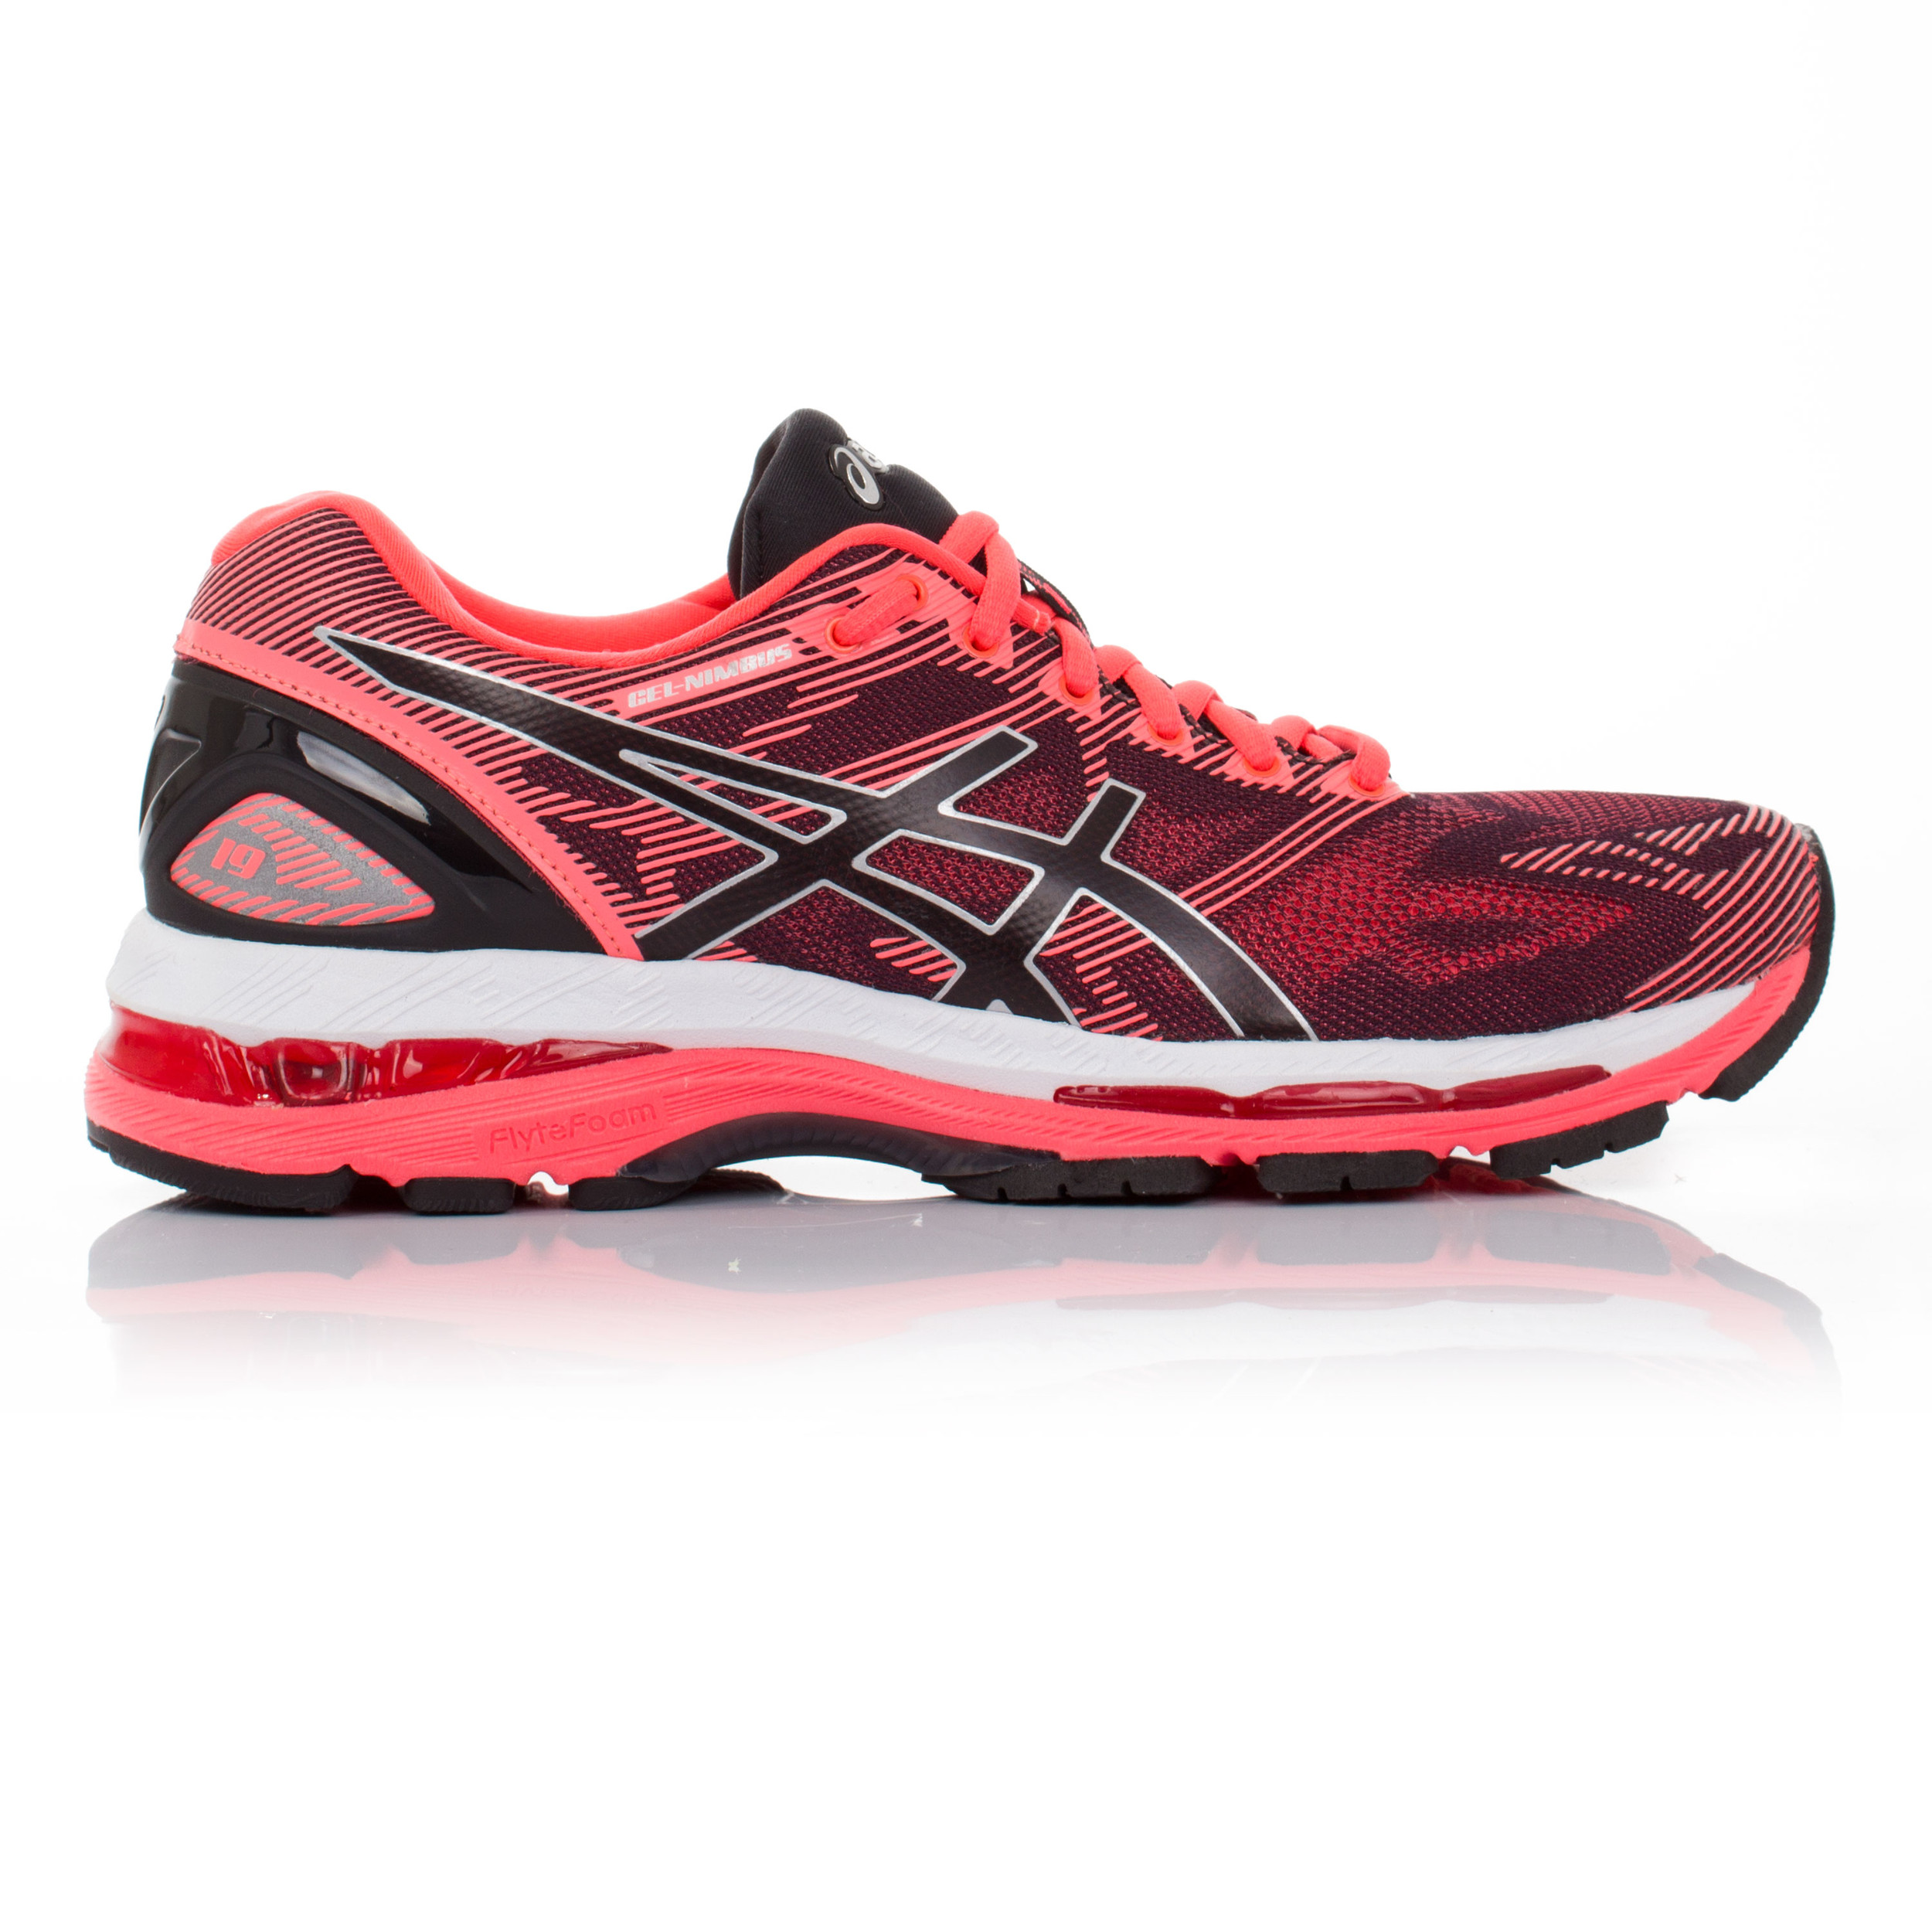 asics gel nimbus 19 mujer naranja zapatillas acolchadas deporte correr carretera. Black Bedroom Furniture Sets. Home Design Ideas